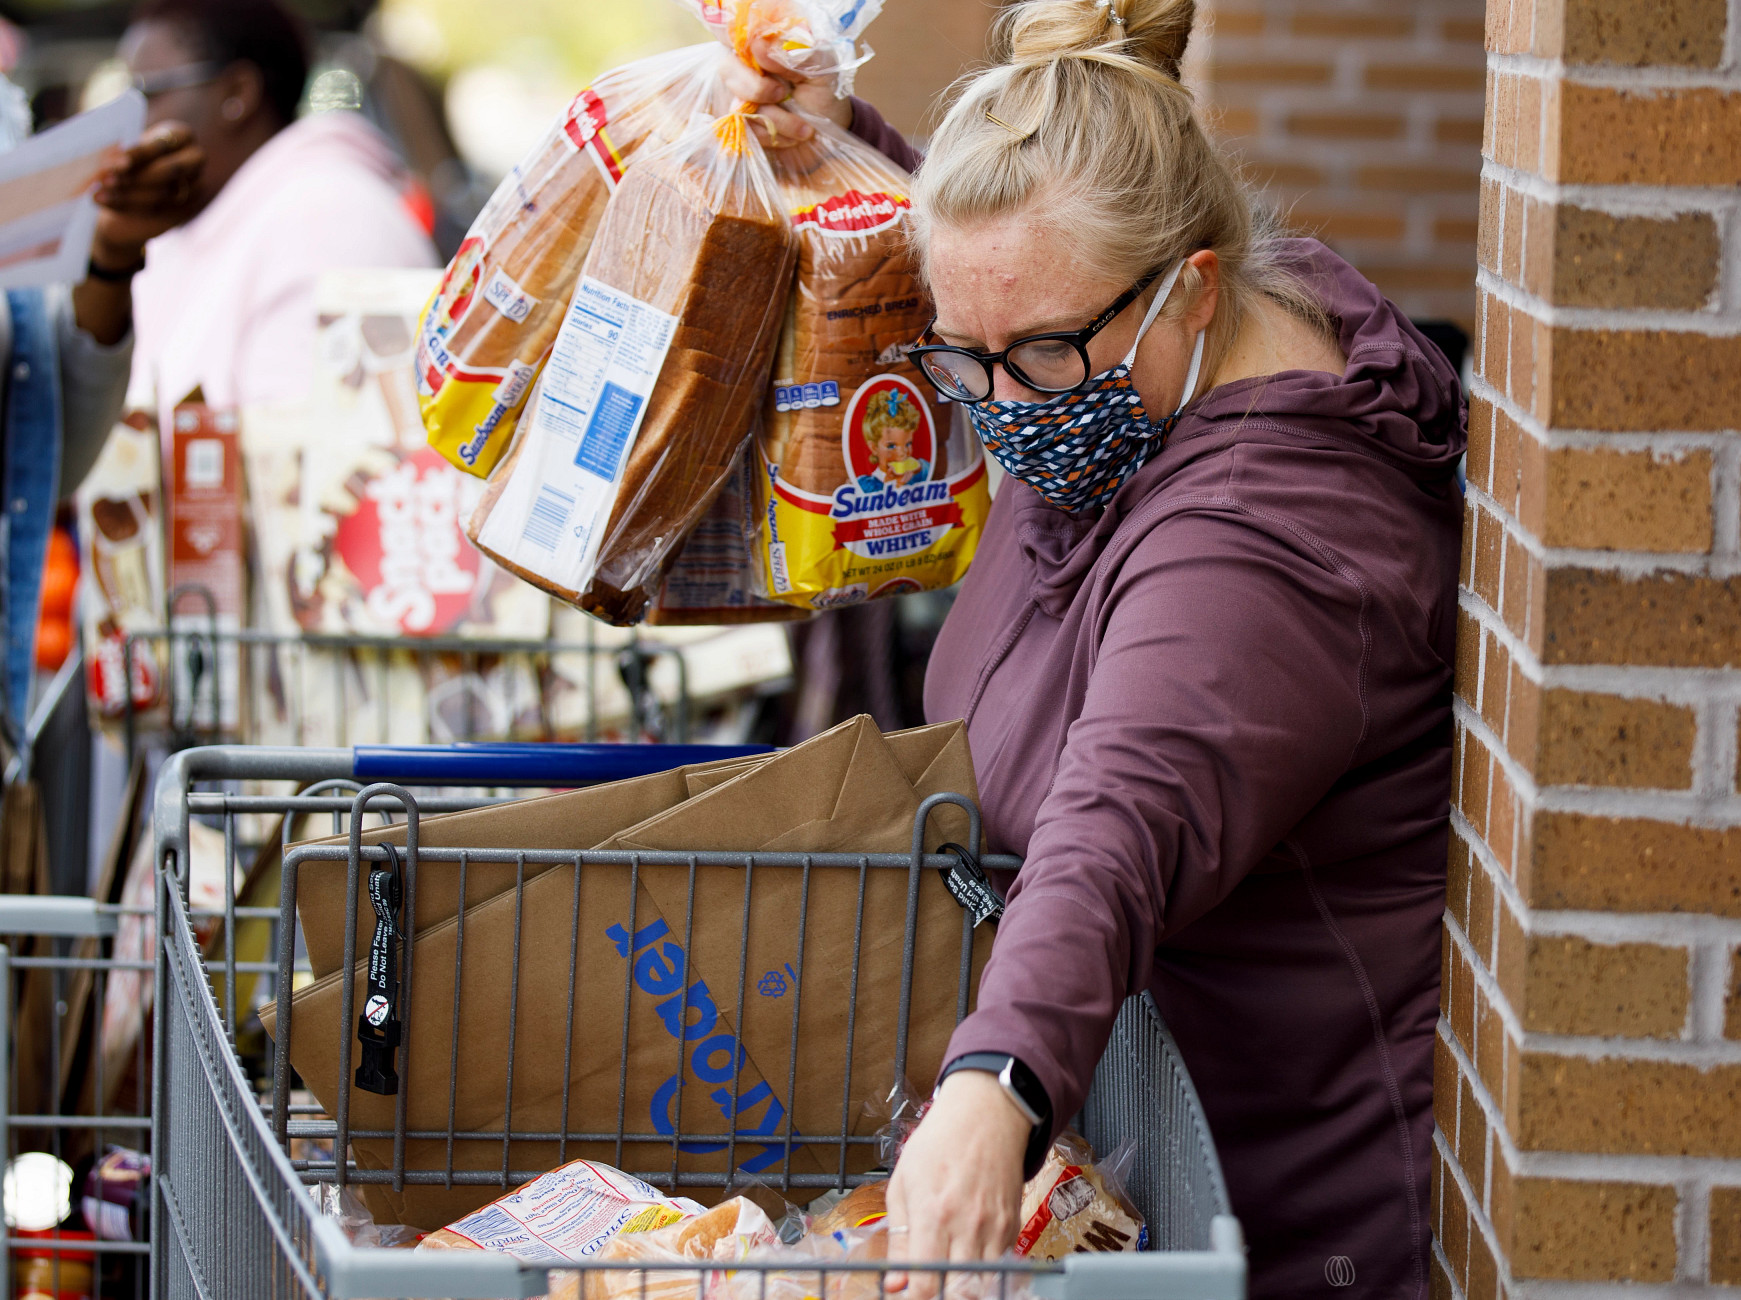 A masked woman takes bread from a cart